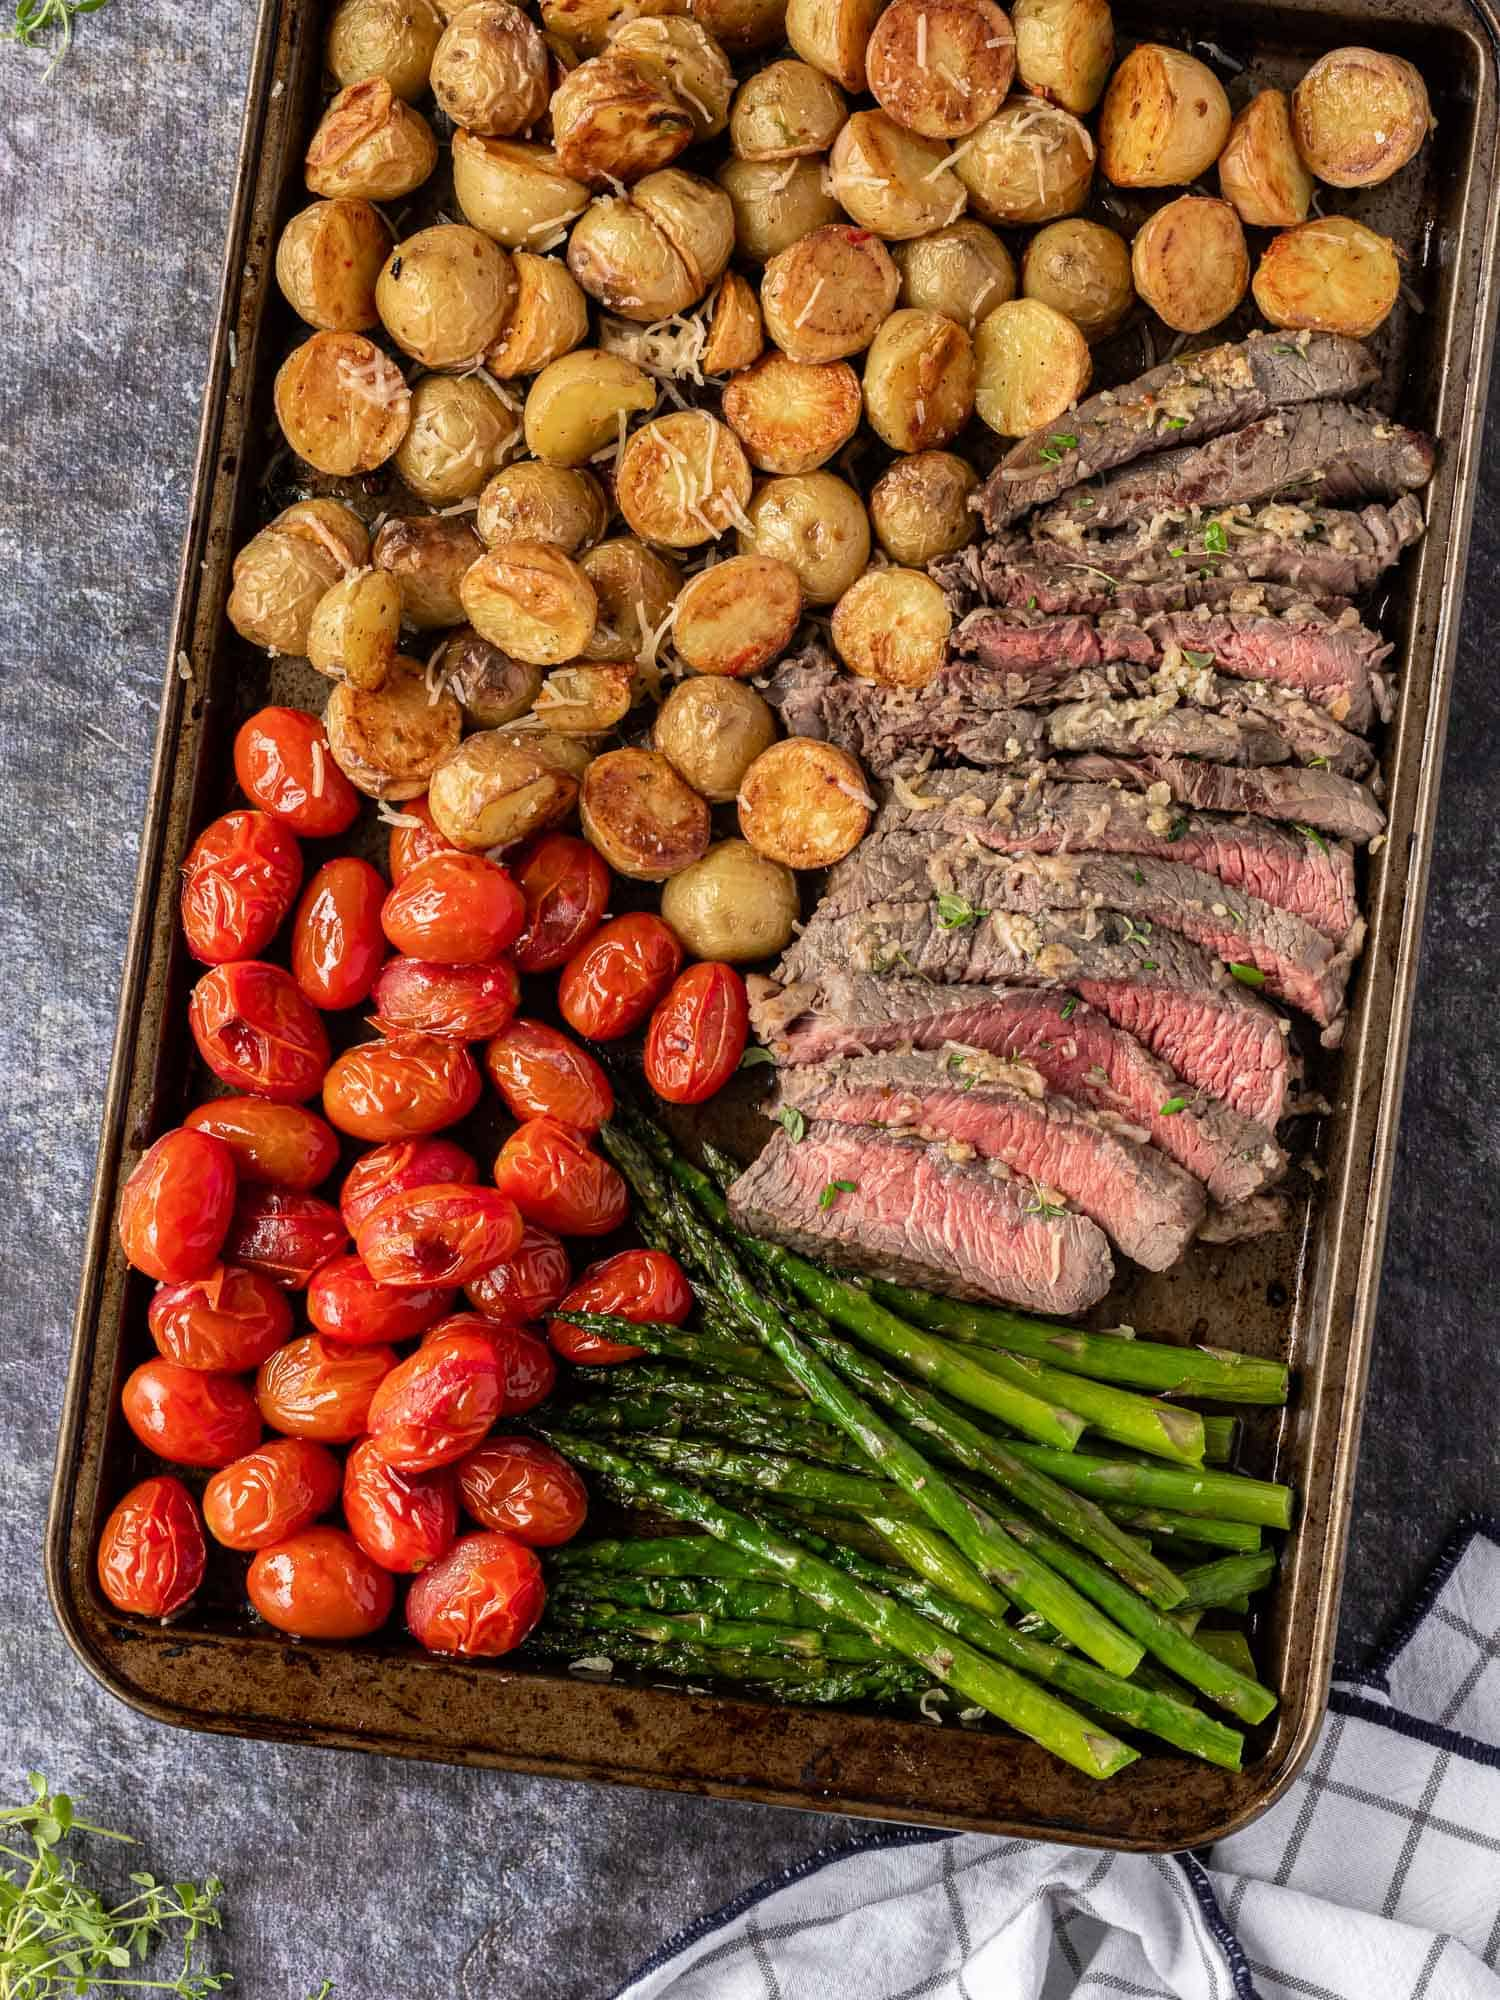 Cut steak, pink inside, on a sheet pan with tomatoes, potatoes, asparagus.